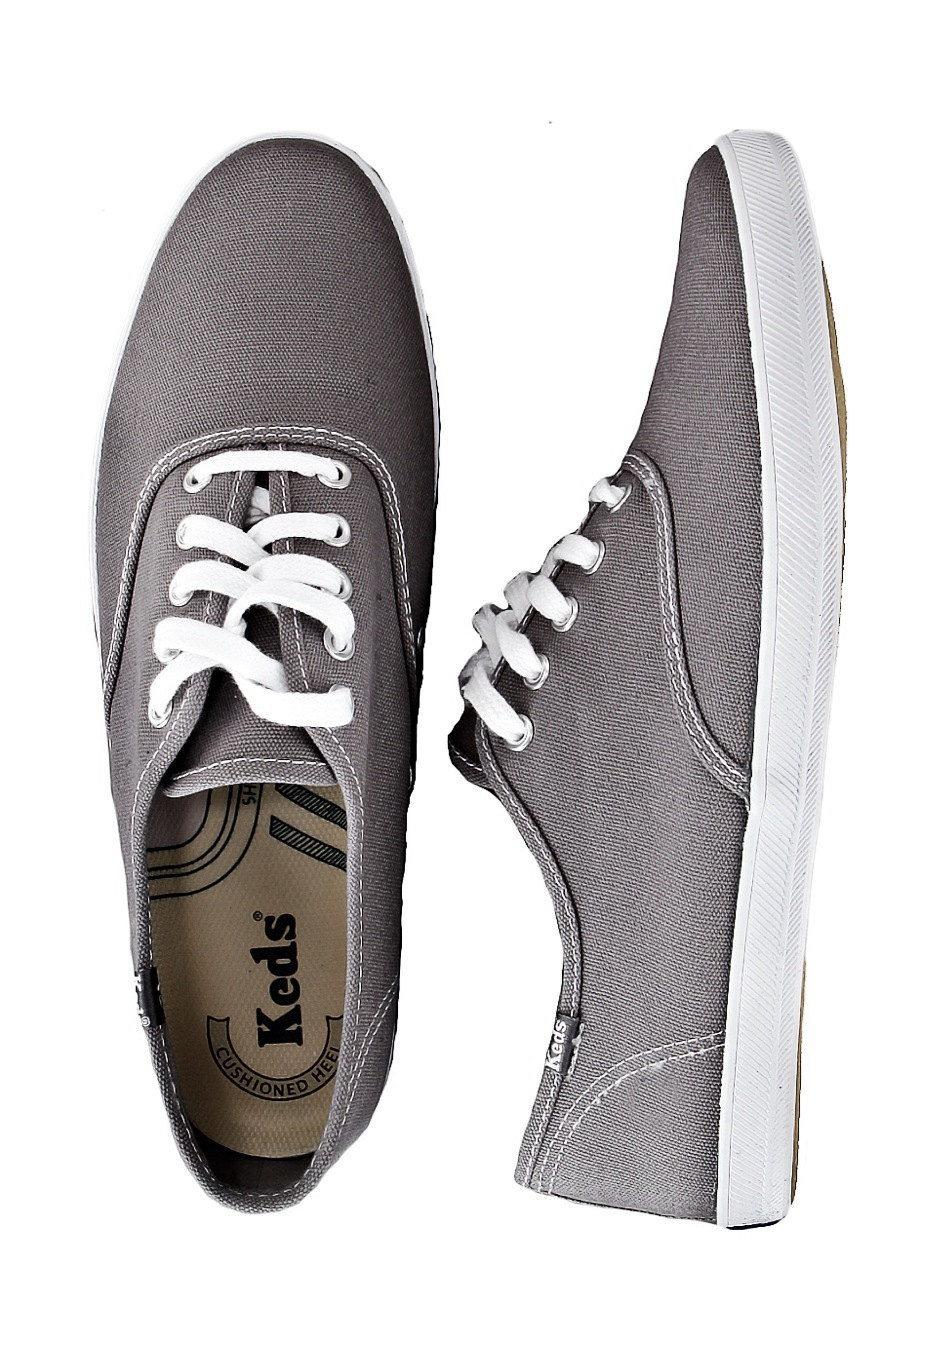 d0e5fb46ee71f Keds - Champion CVO Steel Grey - Shoes - Impericon.com AU